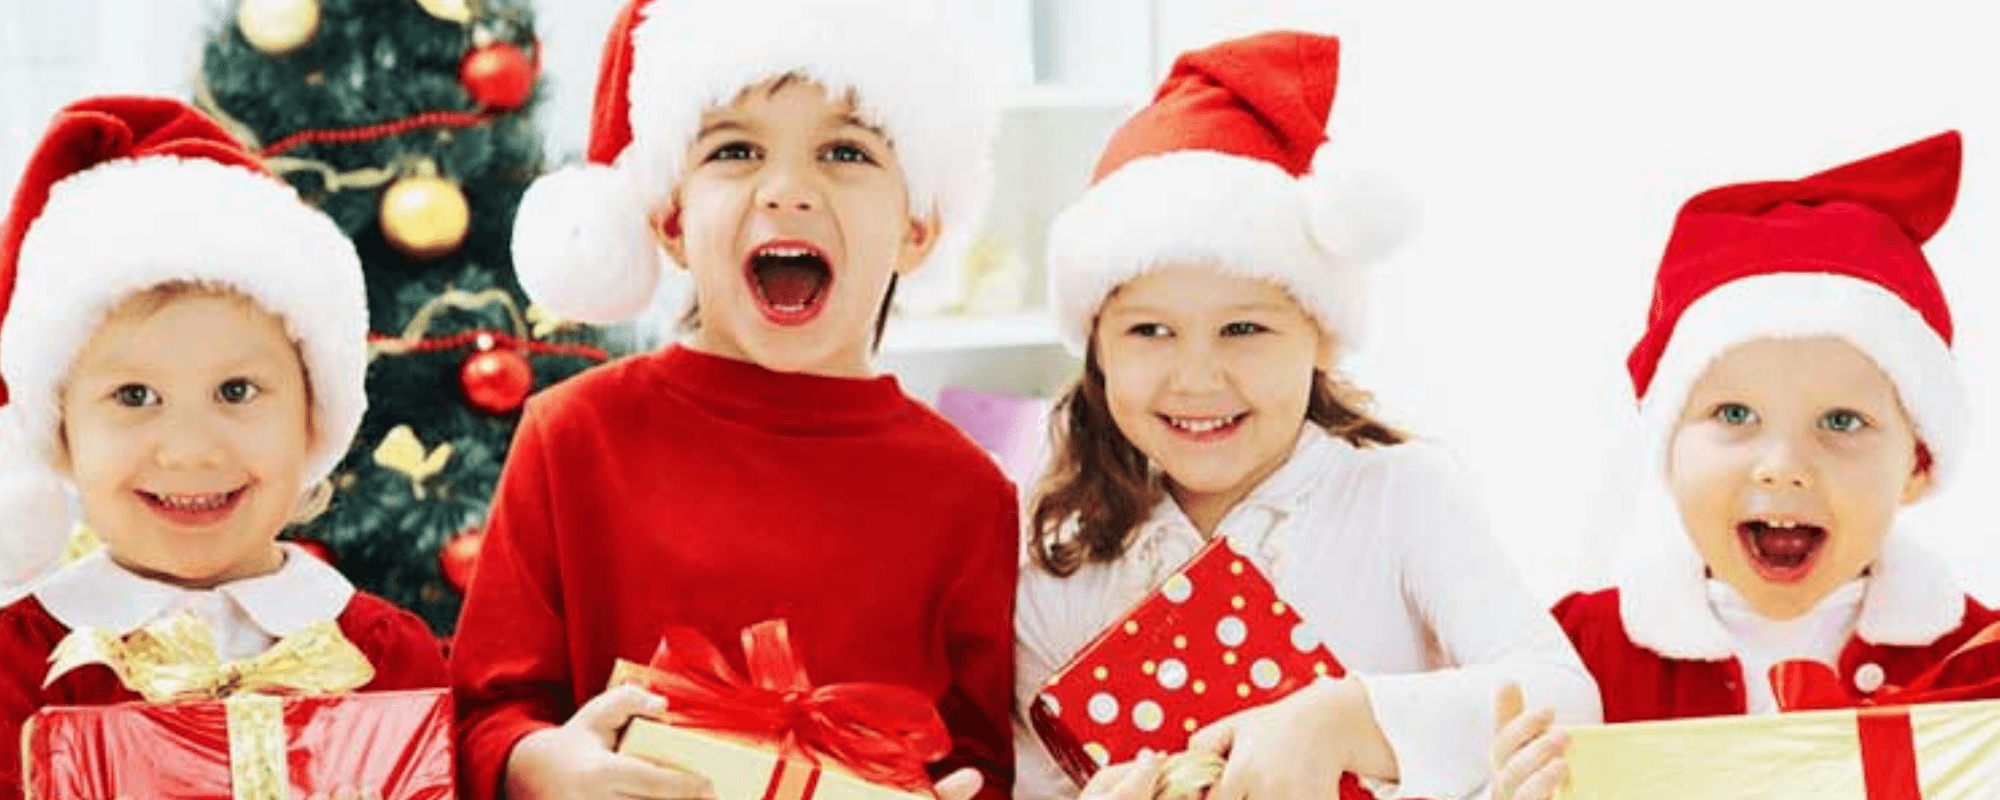 children happy at opening Christmas presents